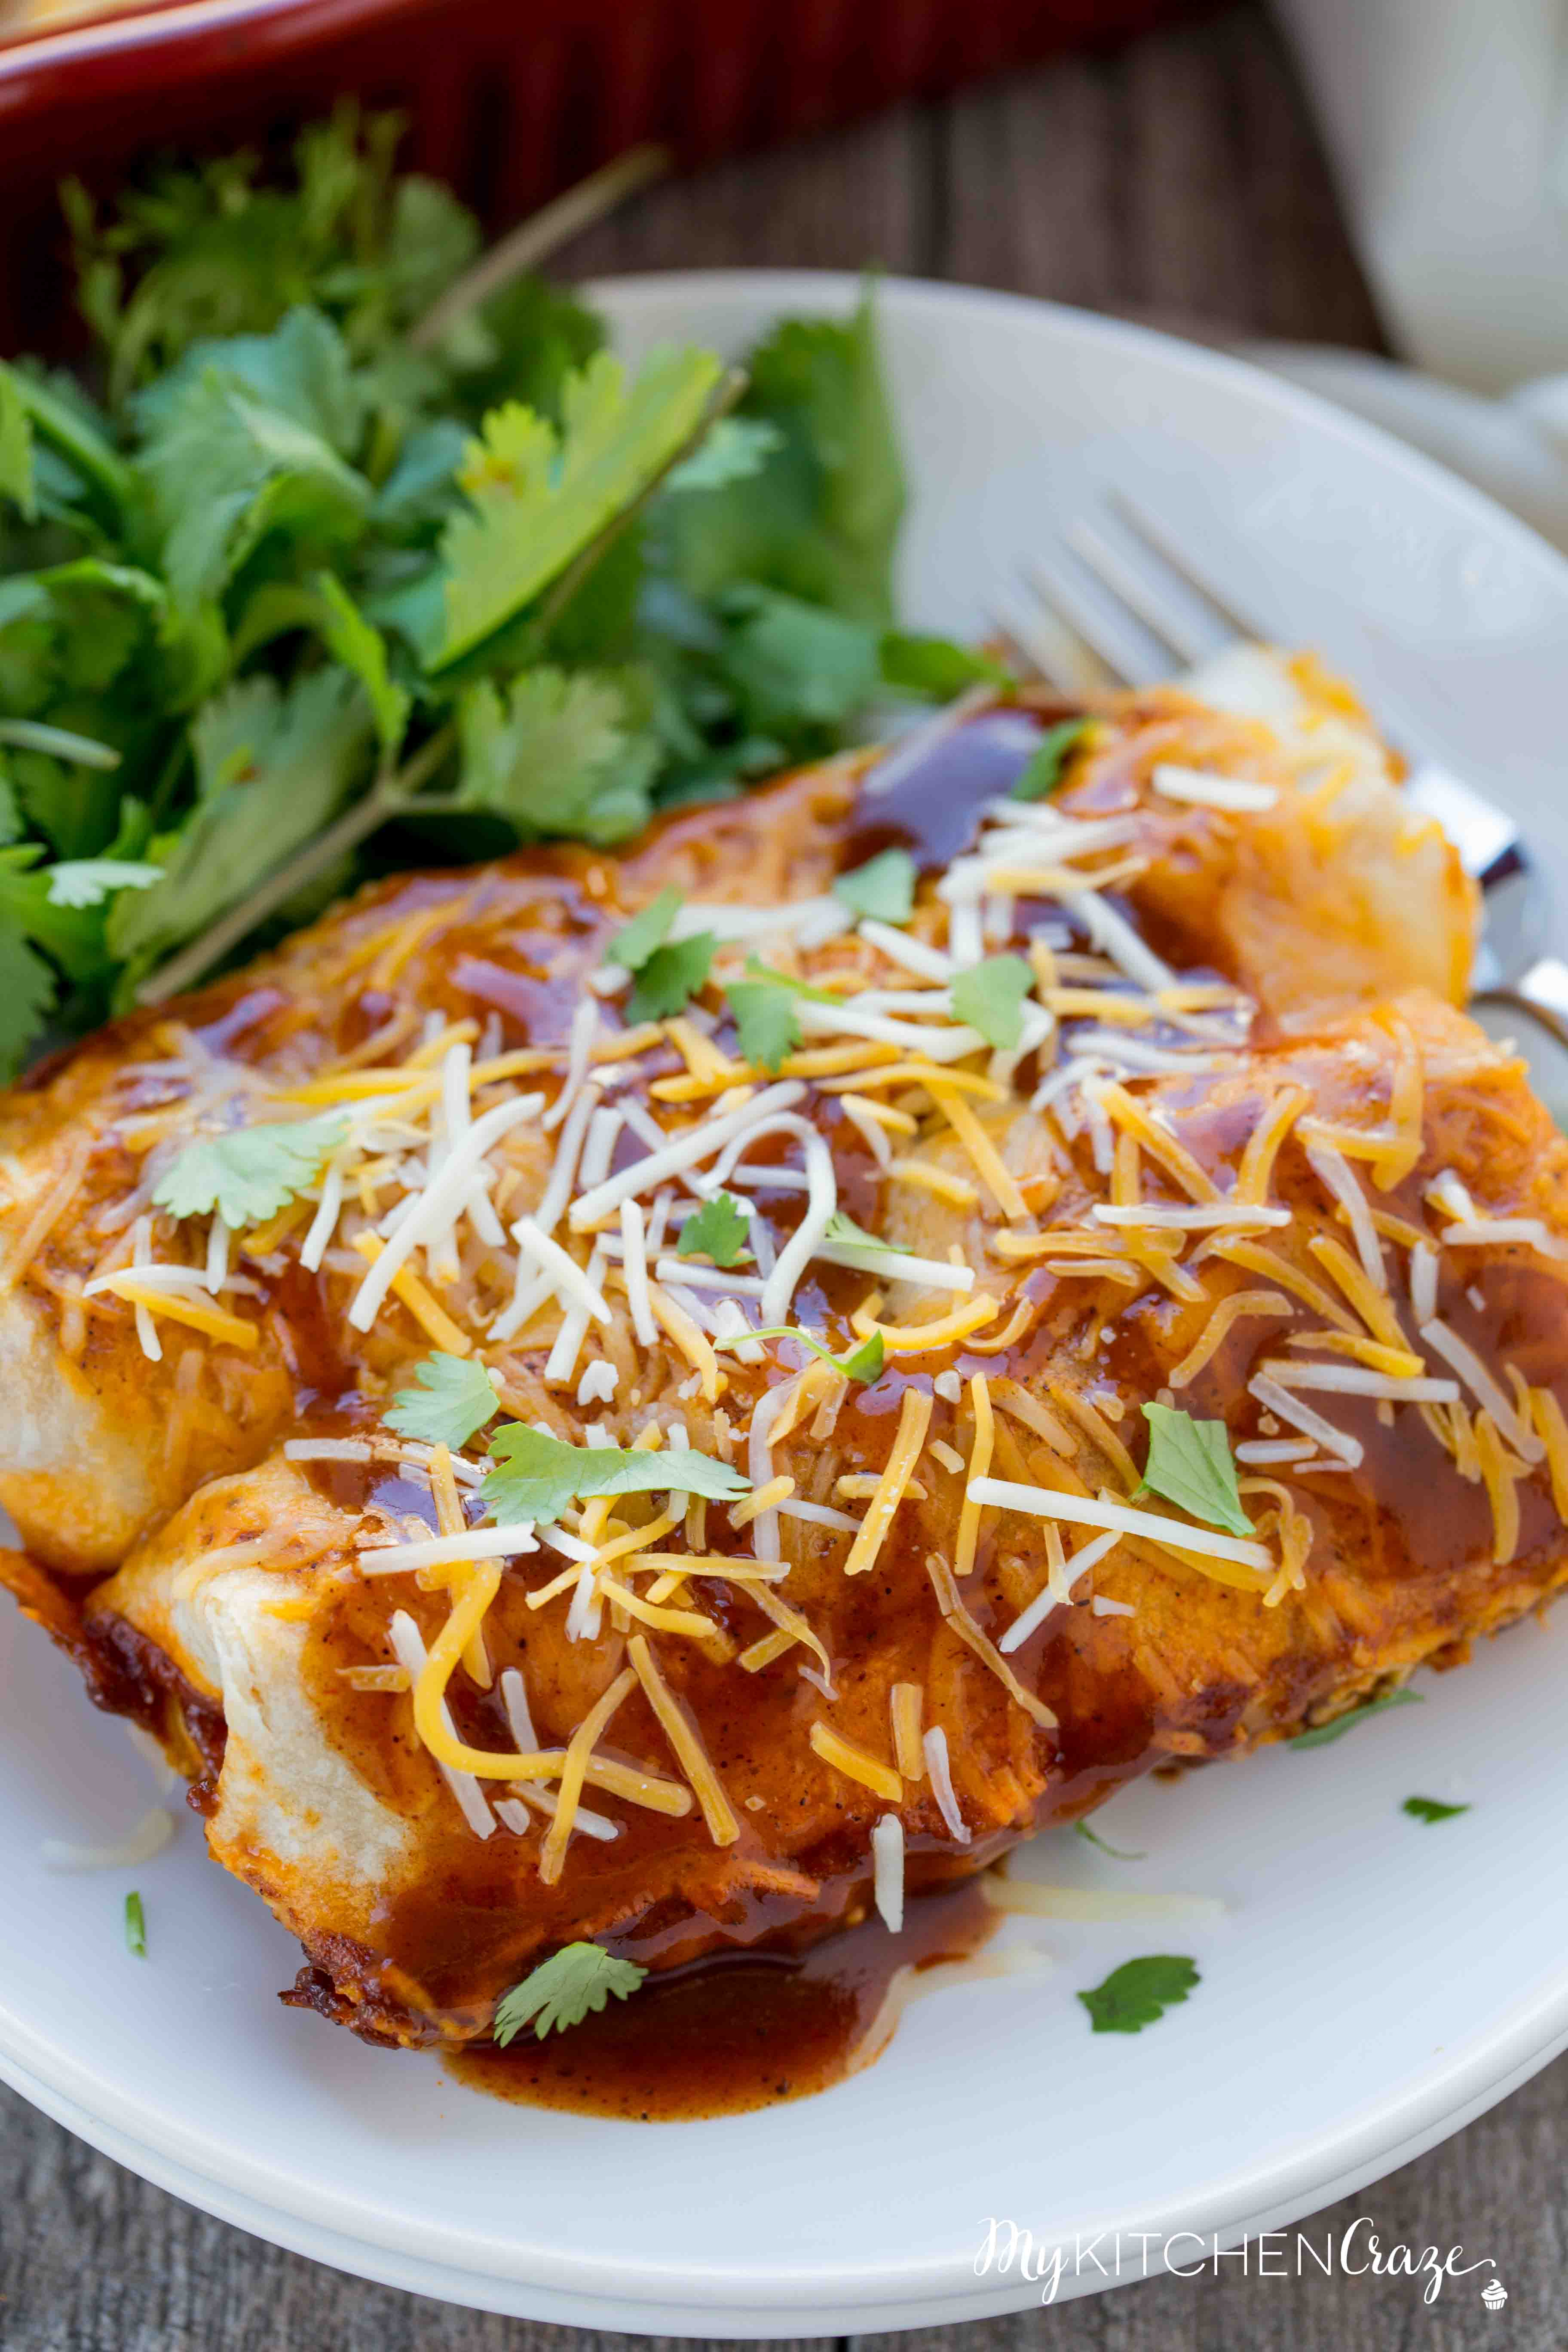 Beef & Potato Enchiladas ~ Loaded with delicious ground beef, crispy potatoes, vegetables then layered in a yummy enchilada sauce! The Perfect Weeknight Easy Dinner Recipe!